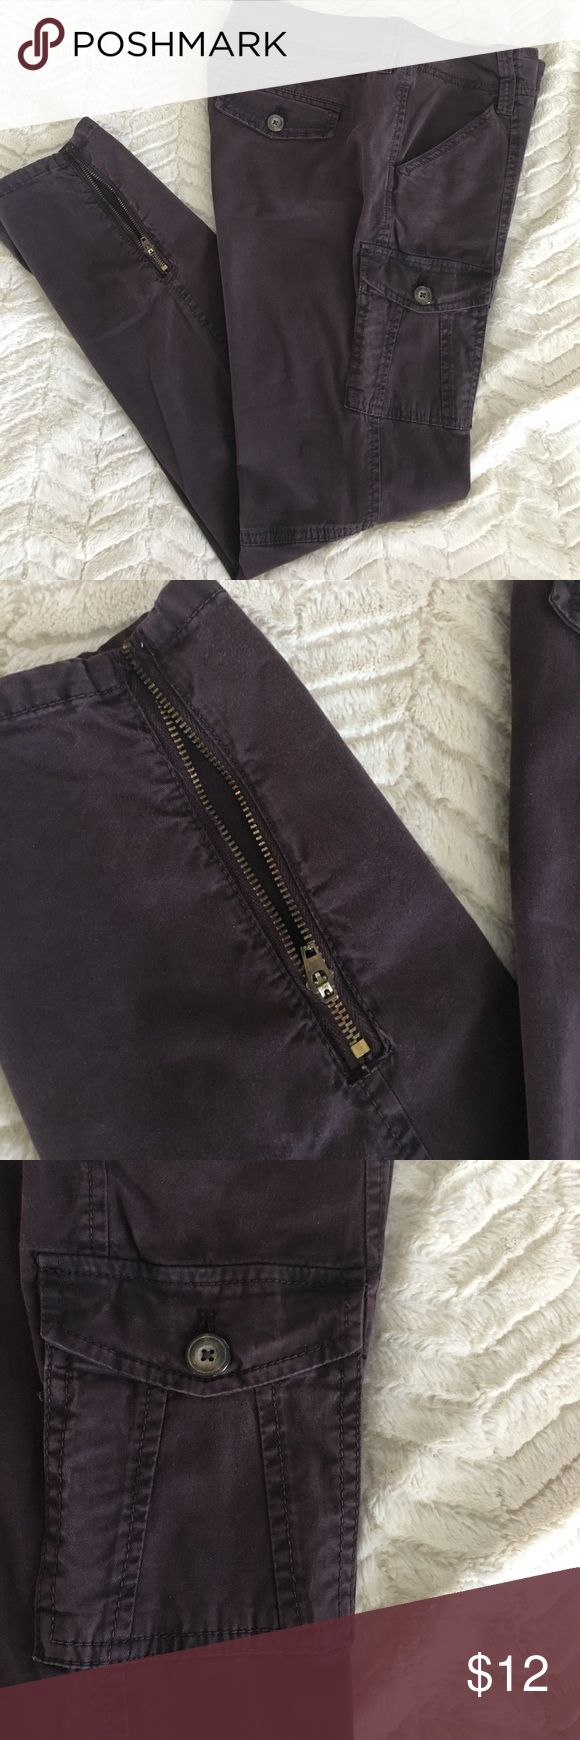 """Old Navy cargo pants Old Navy brown cargo pants. Adorable fit!! Cute zippers at the ankles. Size 4. Front and back pockets. Fitted fit. Approximately 28 1/4"""" long. Old Navy Pants"""